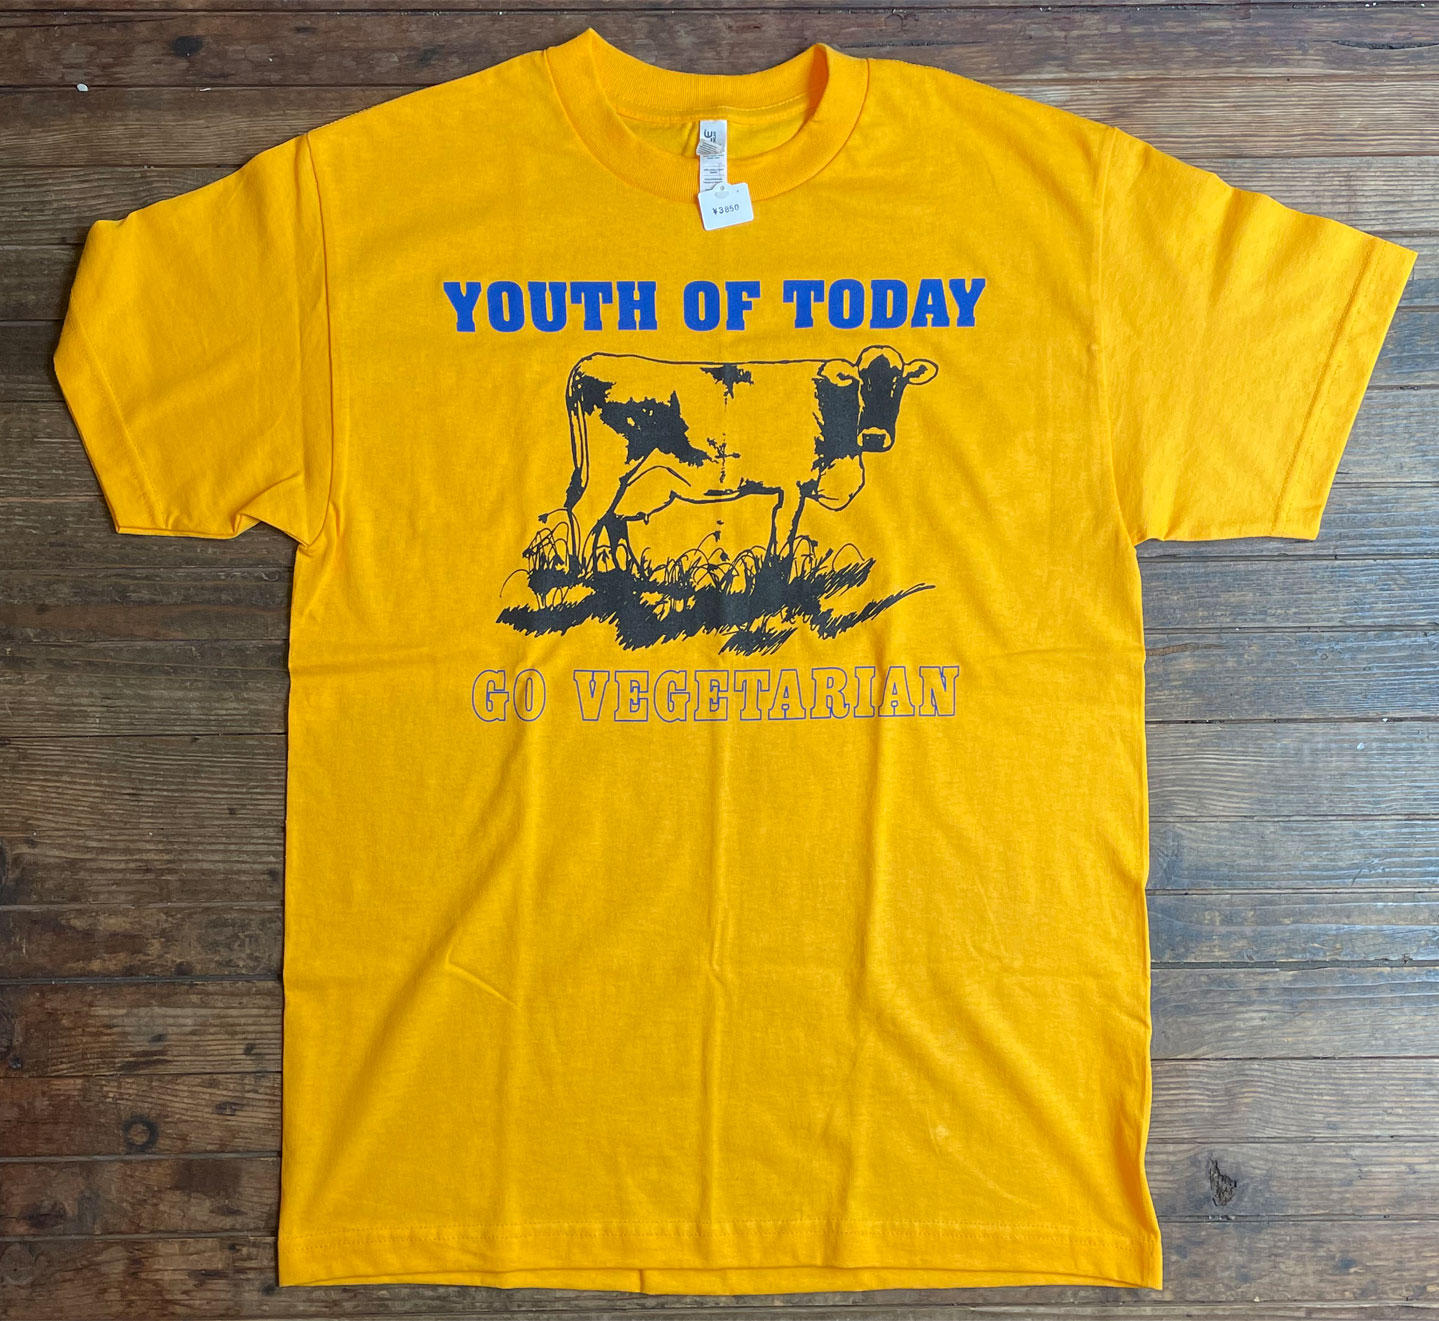 YOUTH OF TODAY Tシャツ GO VEGETARIAN LTD!!!!